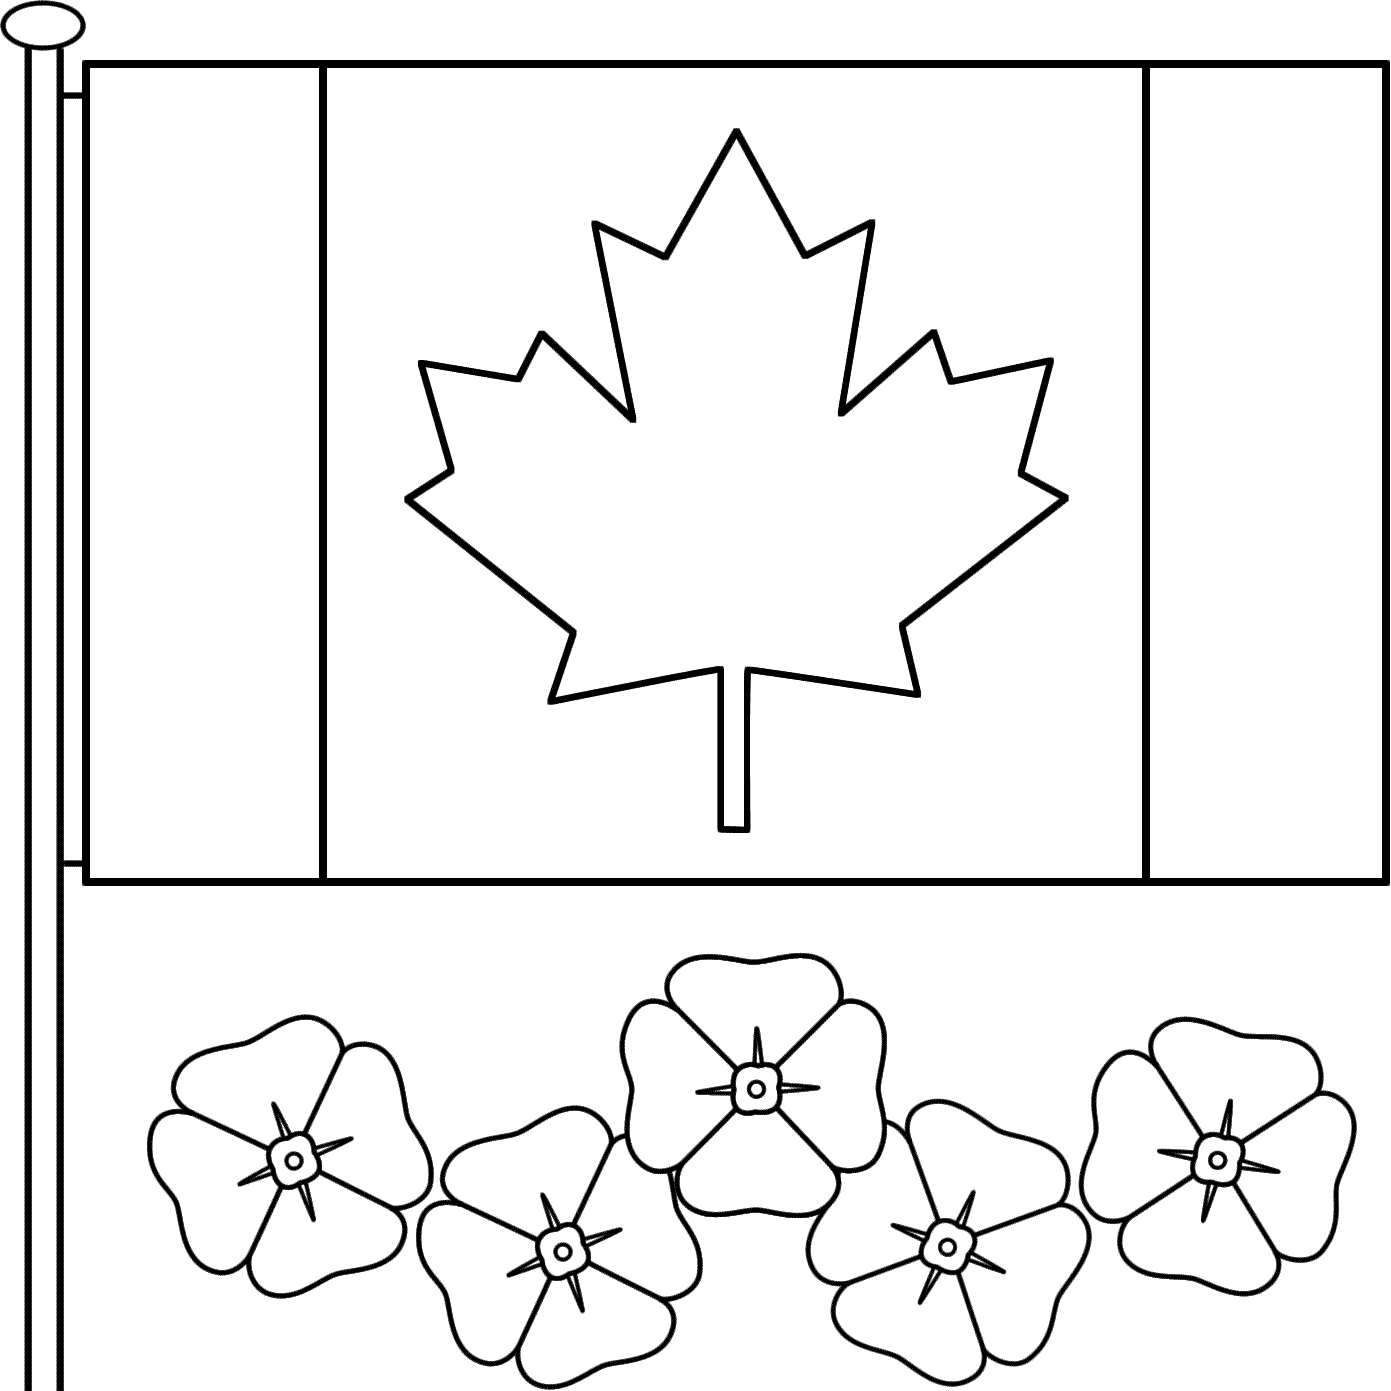 Memorial day flag coloring pages - This Canadian Flag With Poppies Coloring Page Features A Picture Of The Canadian Flag And Five Poppies To Color For Remembrance Day